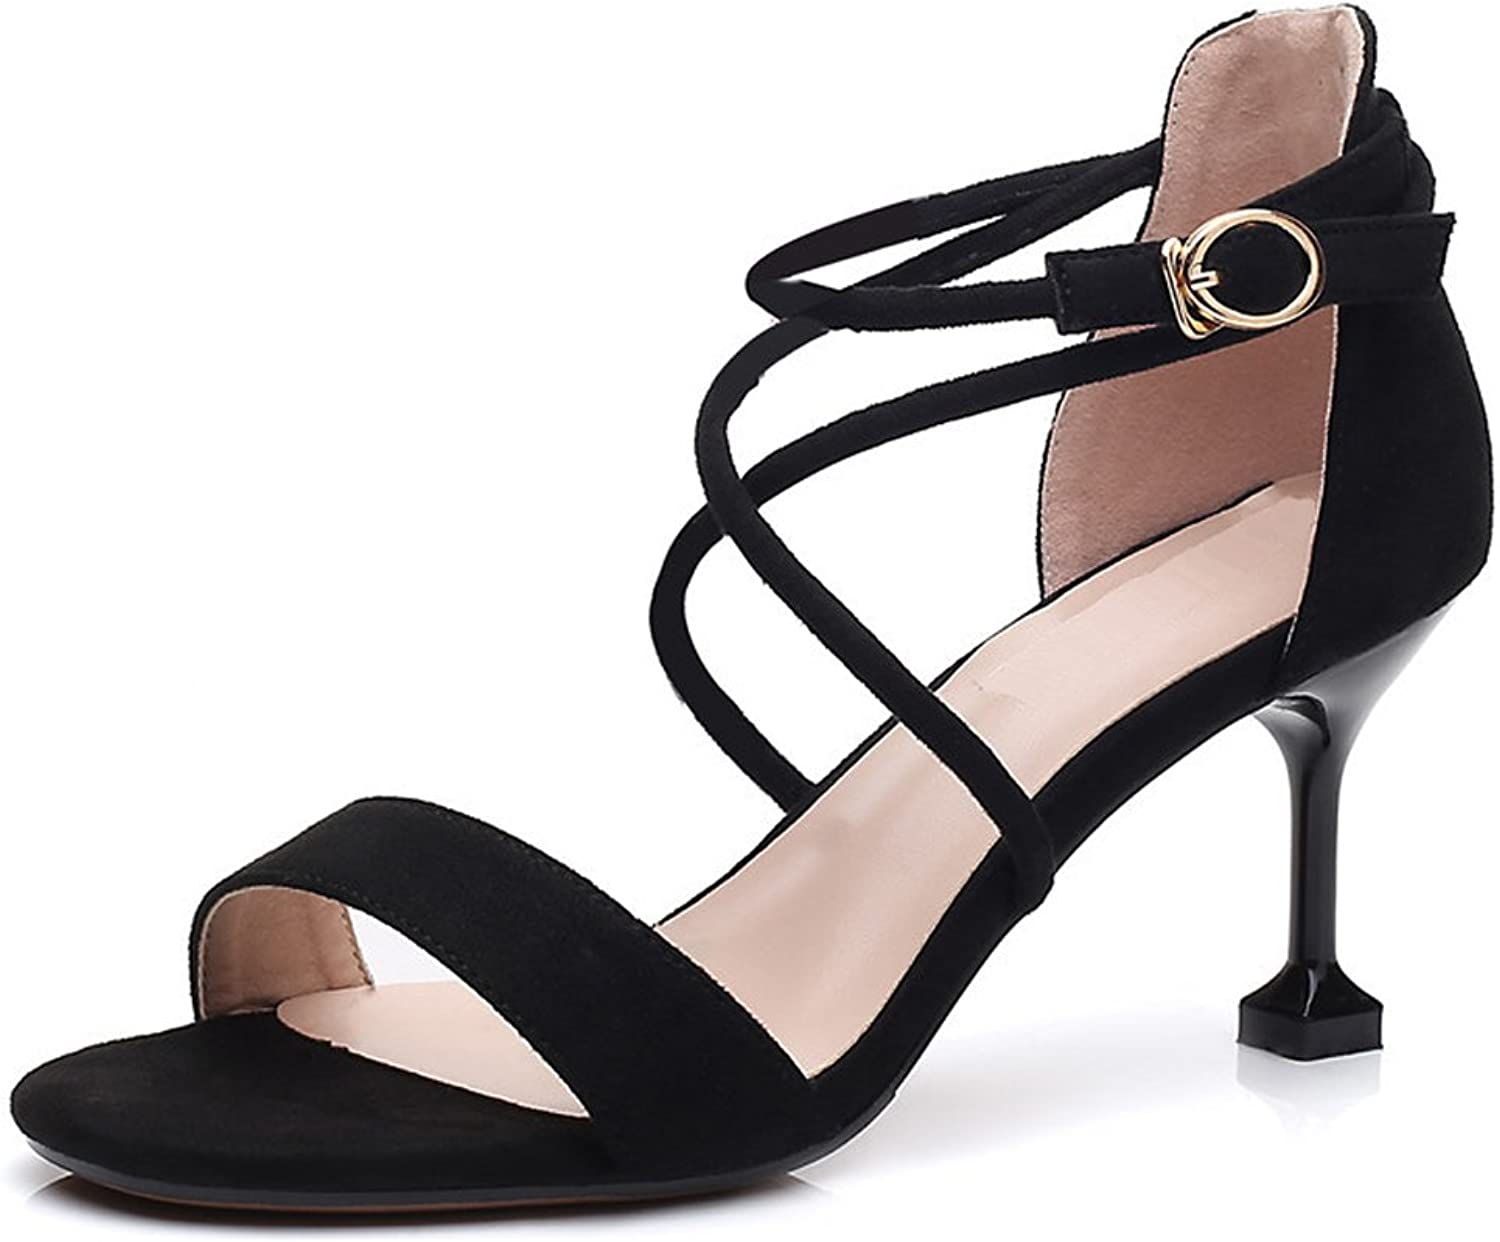 Dreneco Womens Kitten Heel Ankle Strap Sandals Ladies Peep Toe Strappy Party shoes